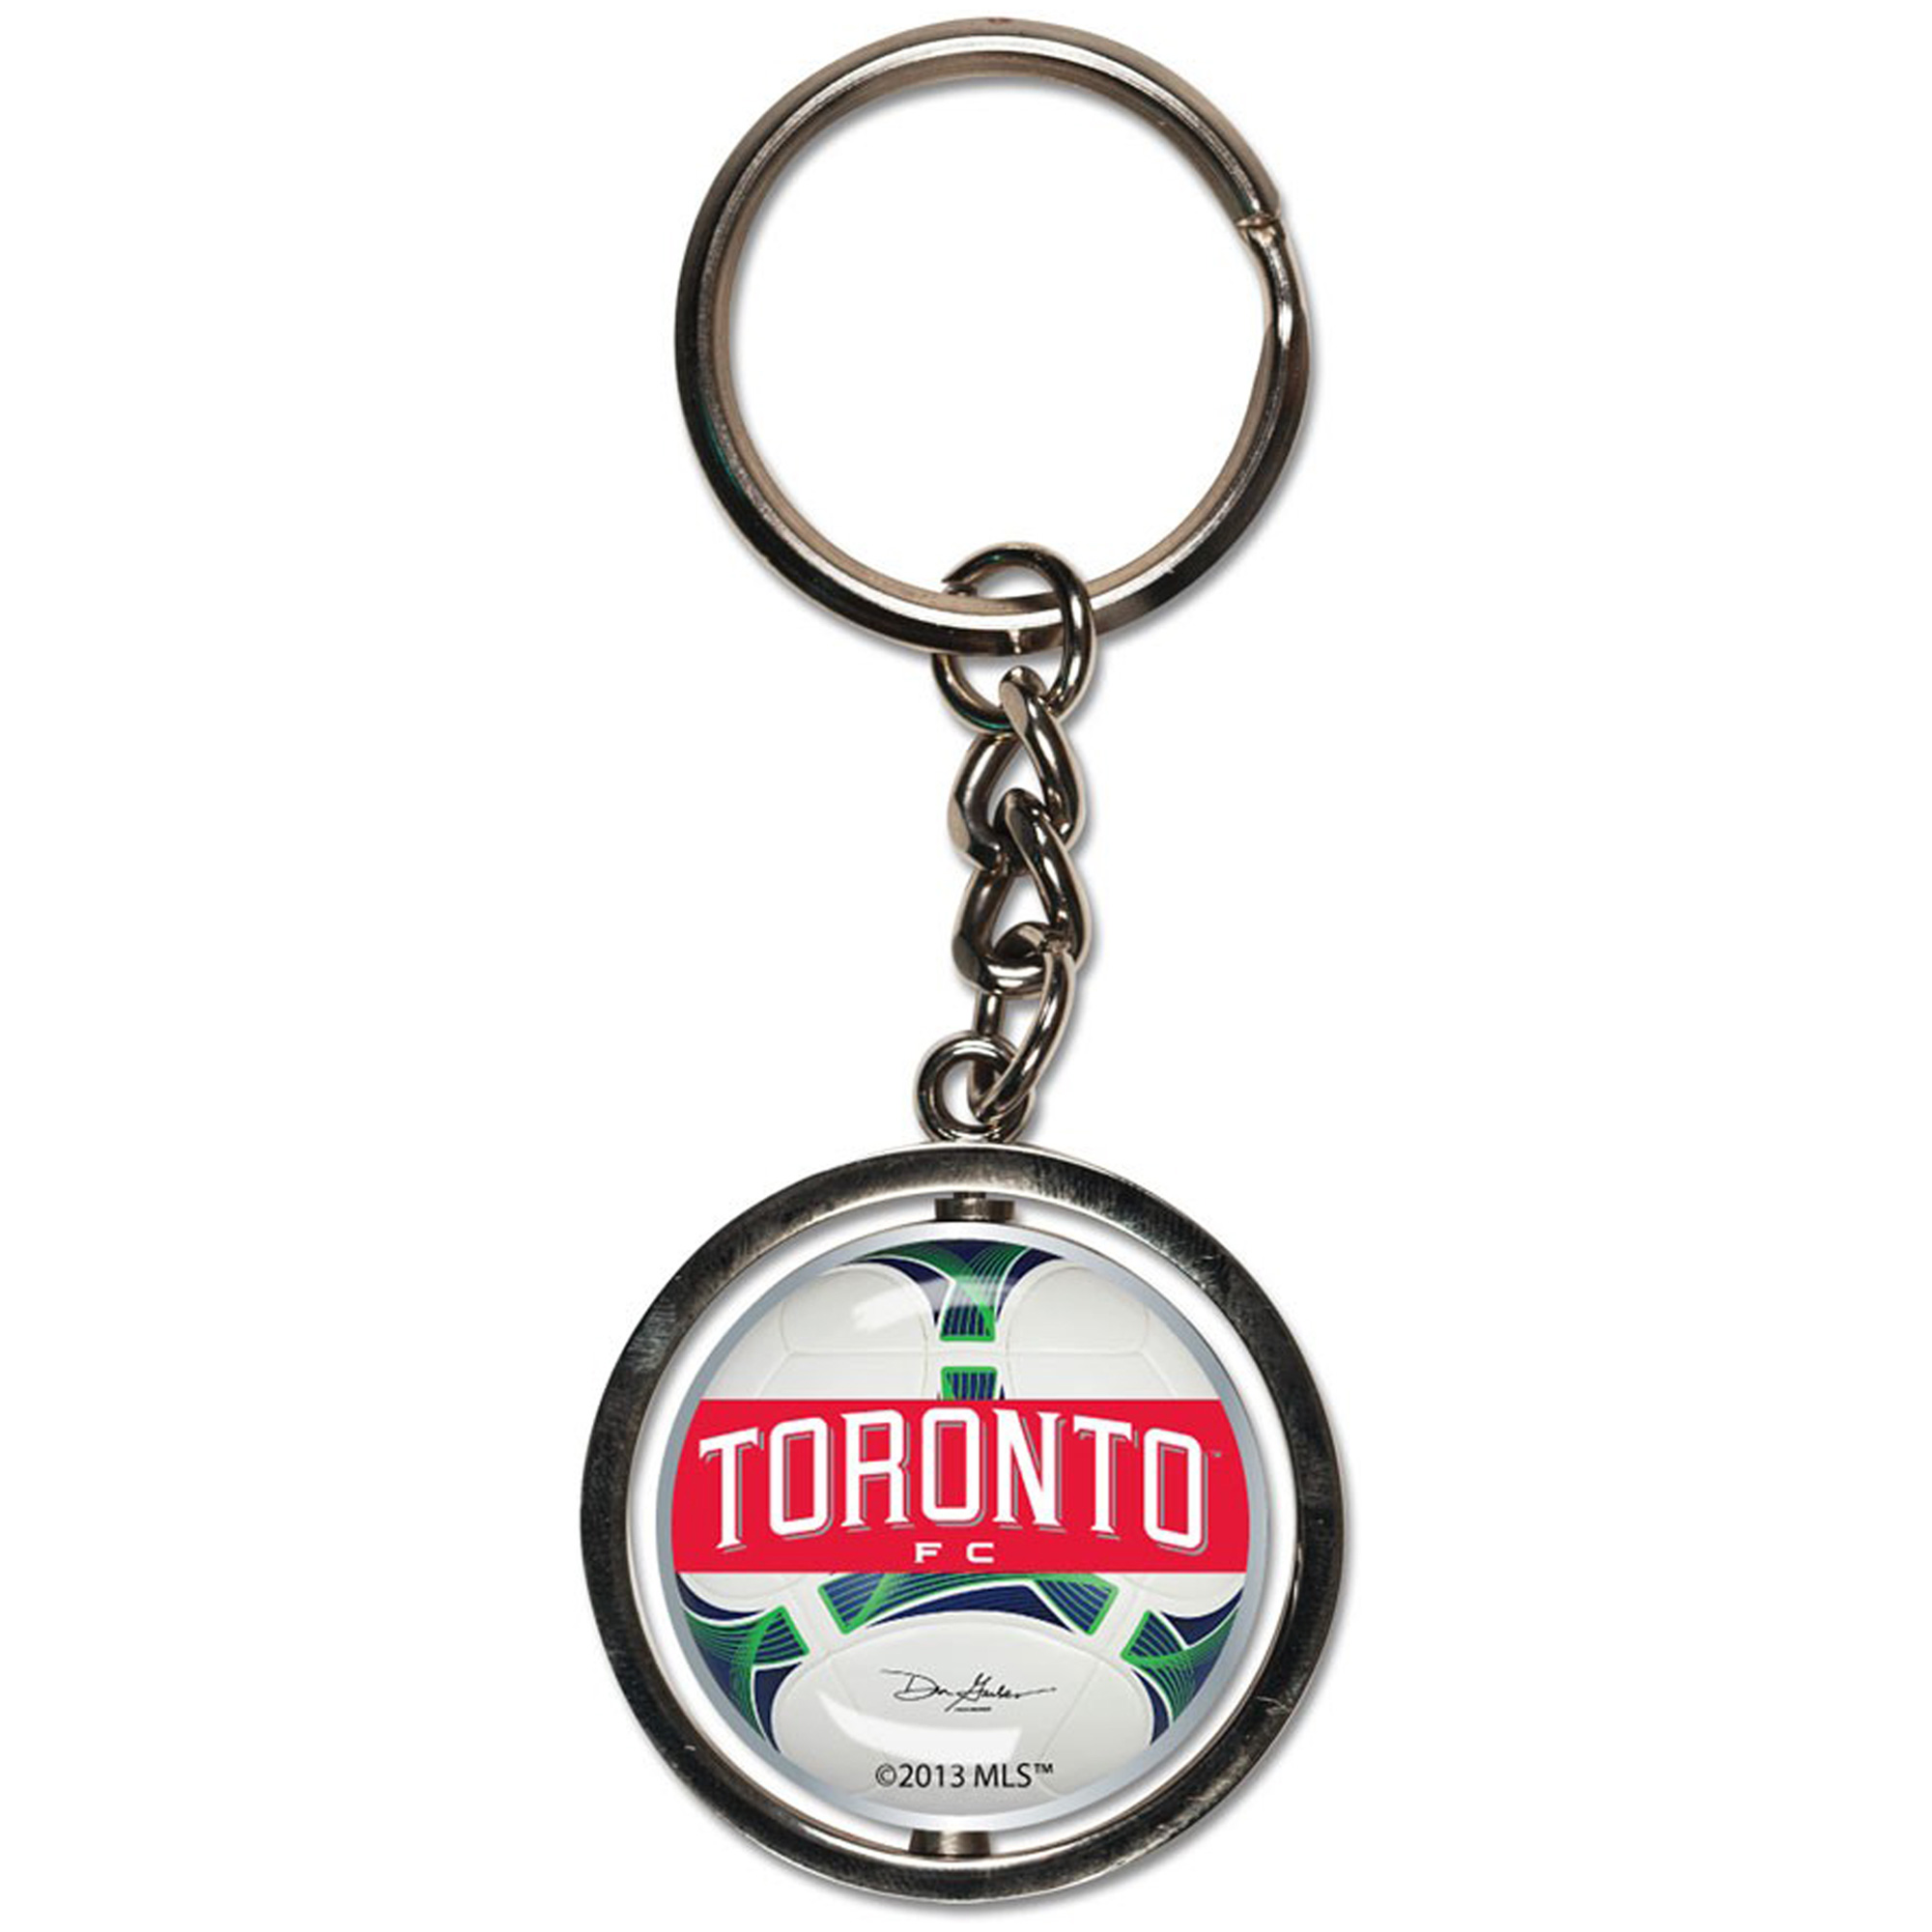 Toronto FC WinCraft Spinner Key Ring - No Size